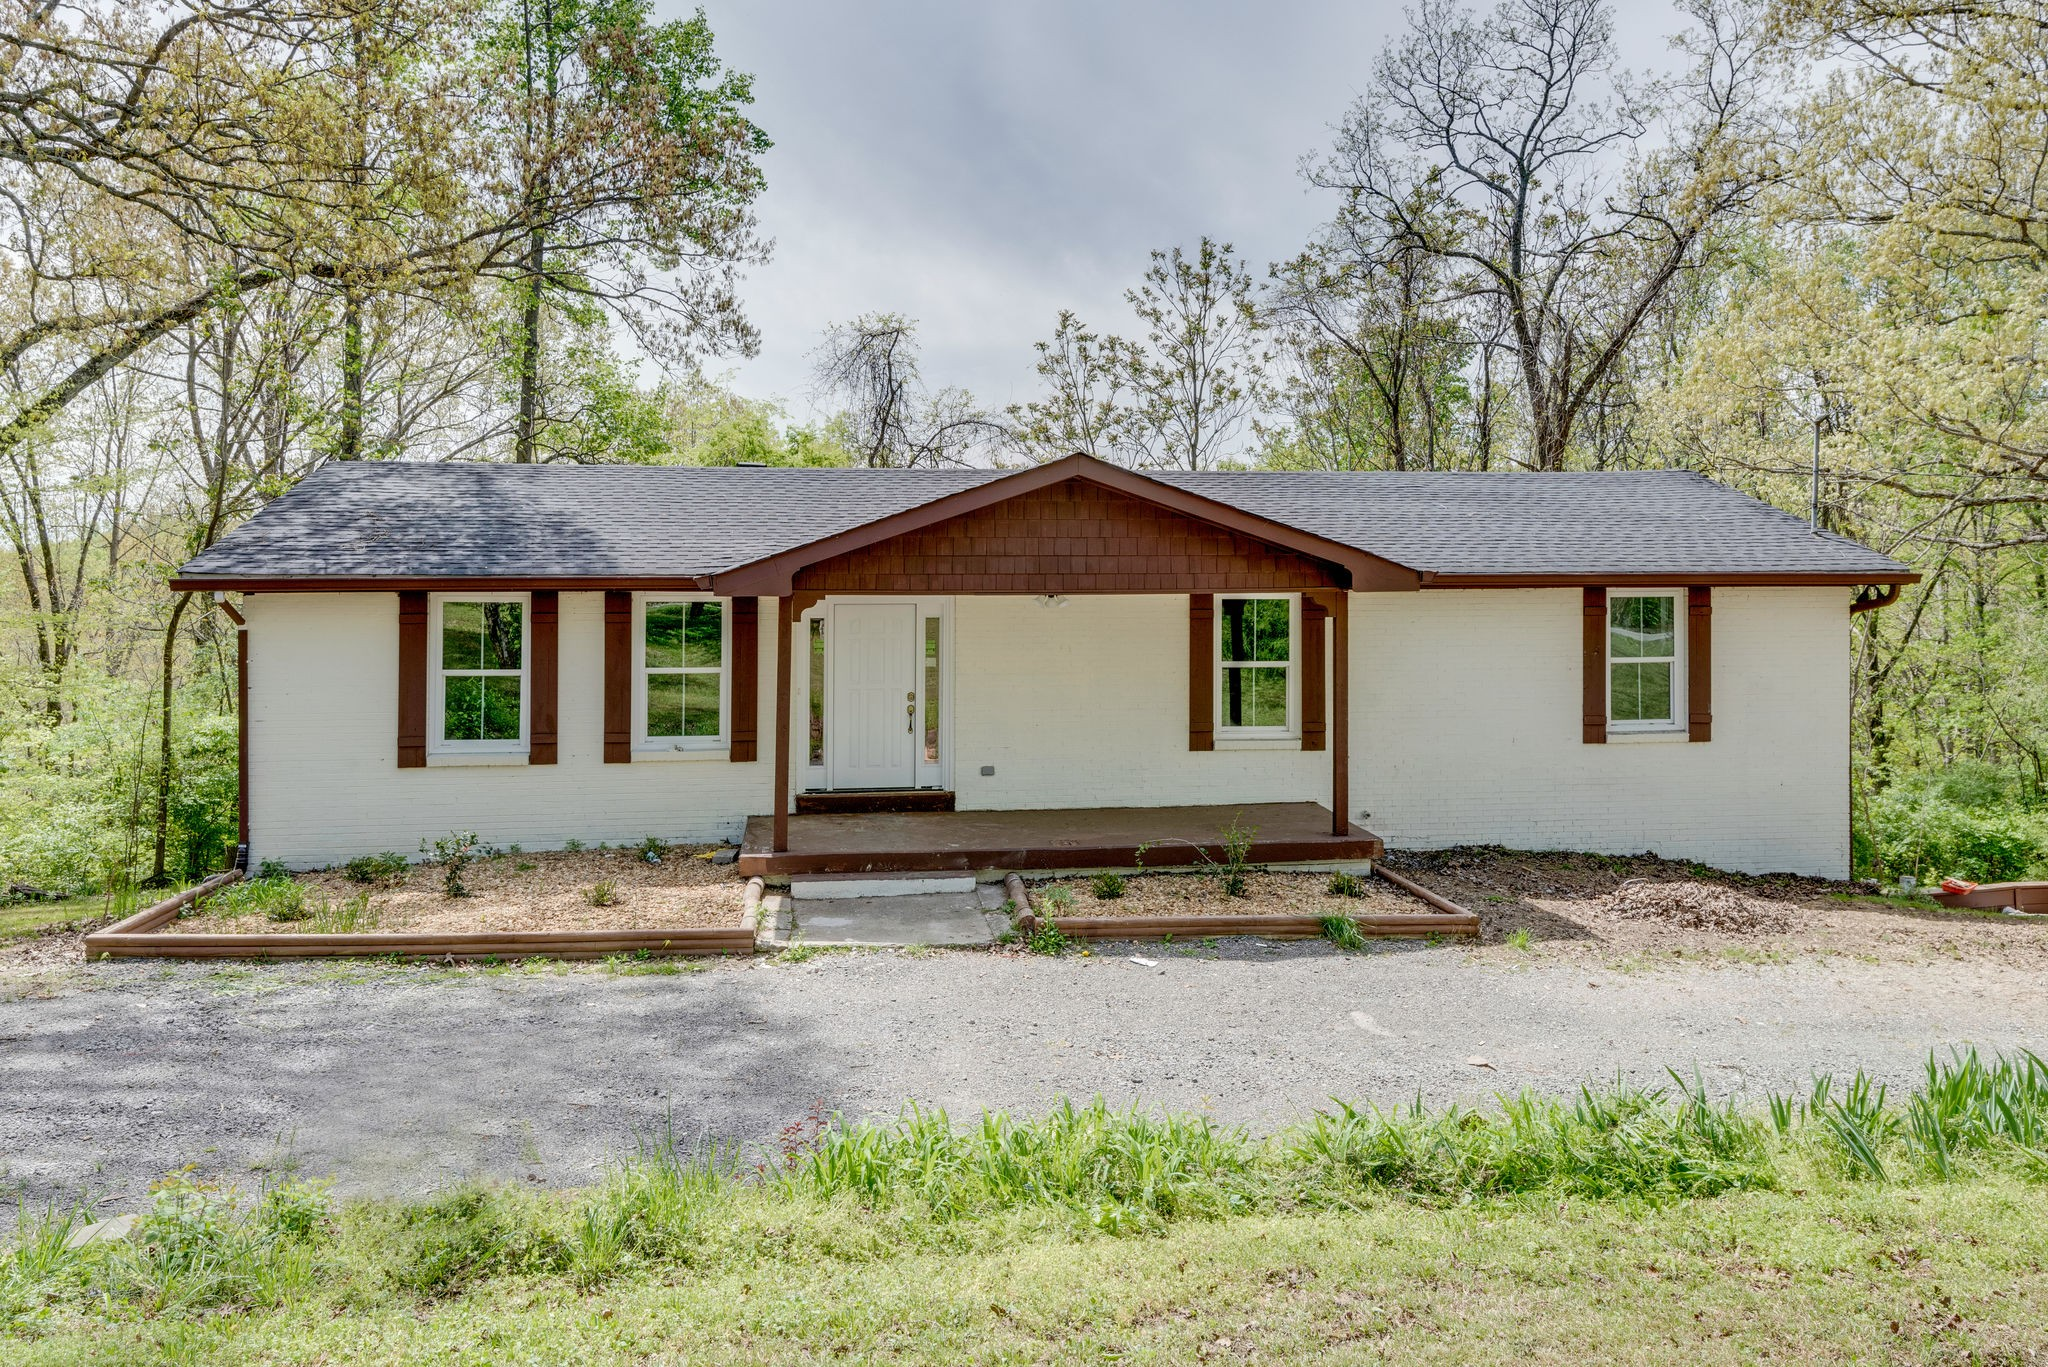 8517 Old Charlotte Pk, Pegram, TN 37143 - Pegram, TN real estate listing